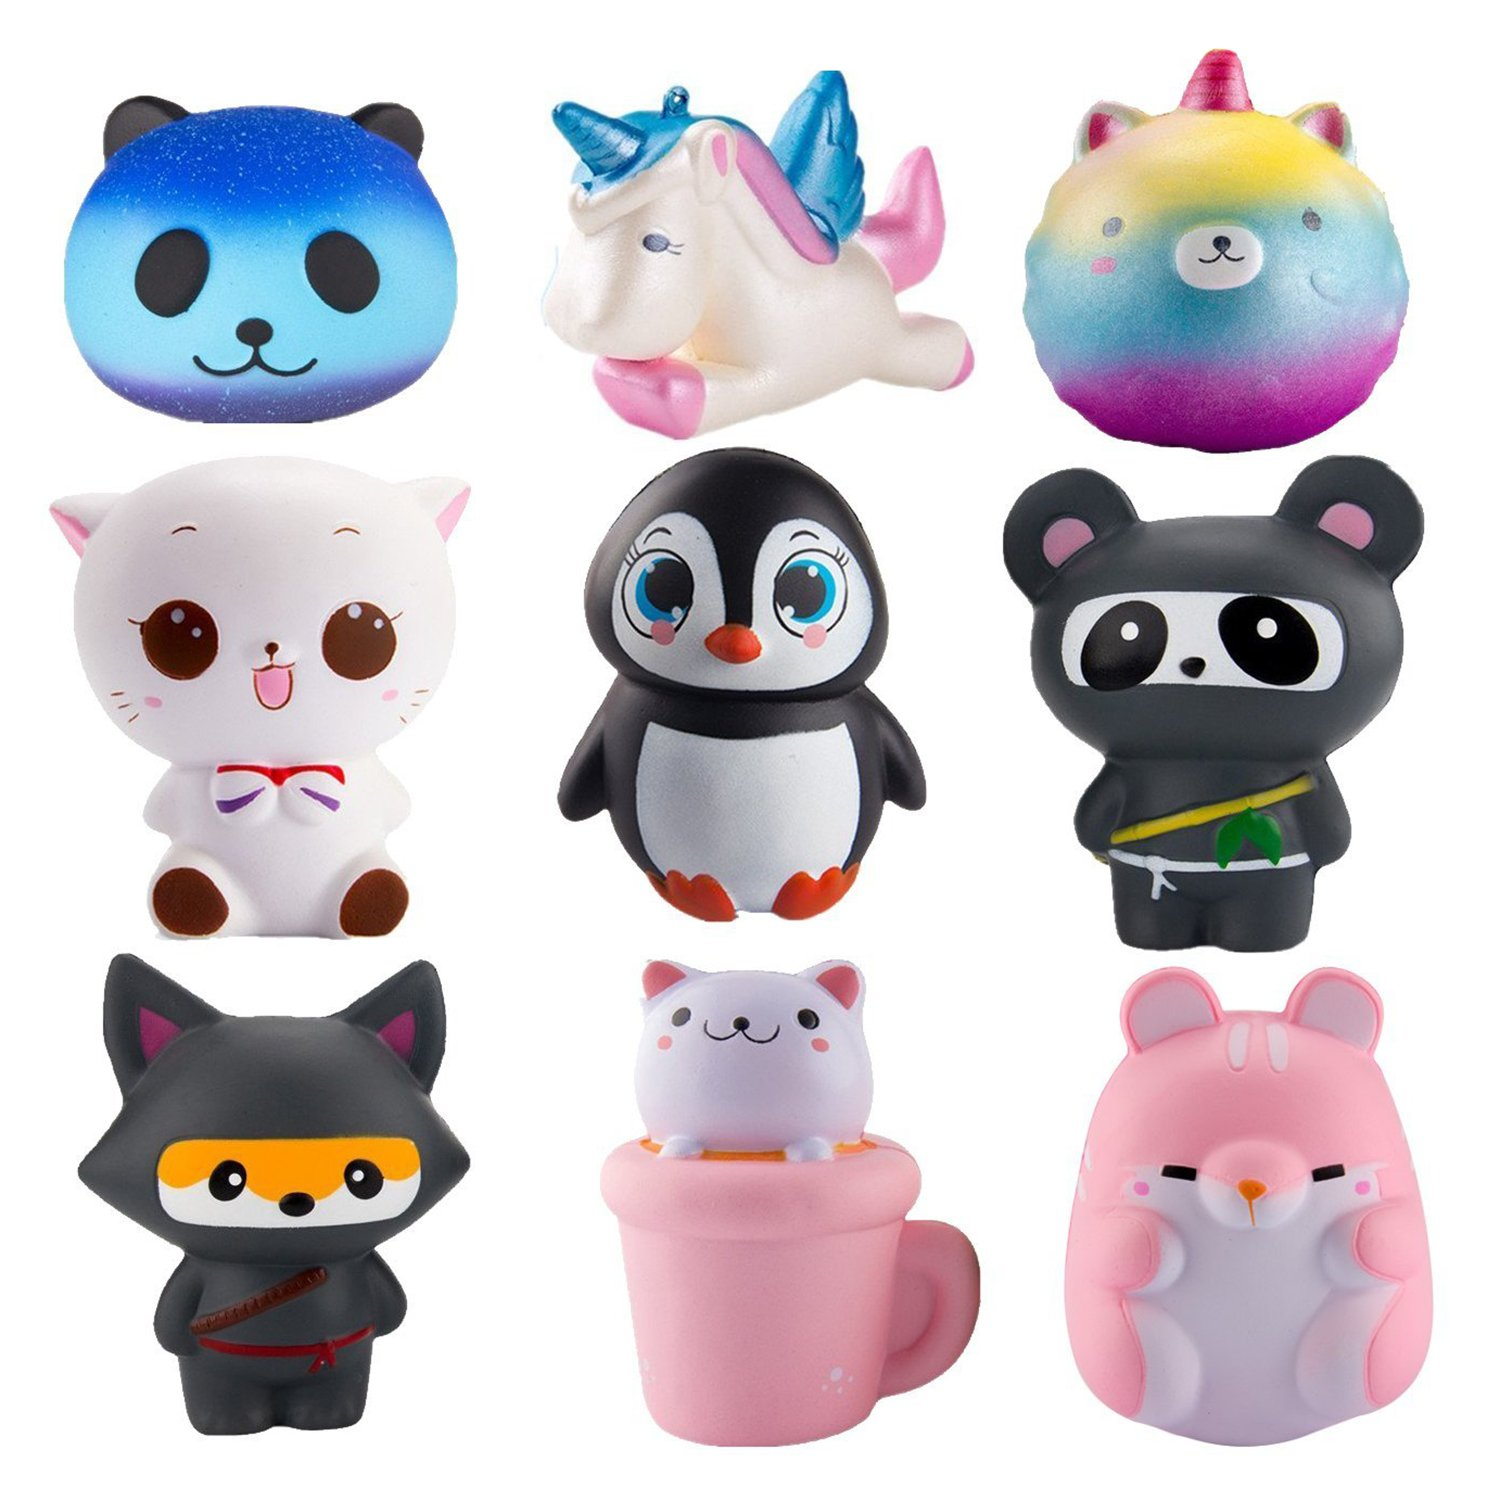 WATINC Random 6Pcs Jumbo Cute Animal Squishy Sweet Scented Vent Charms Slow Rising squishies Kawaii Kid Toy, Lovely Stress Relief Toy, Animals Gift Fun Large(WT-6p Animal Set)